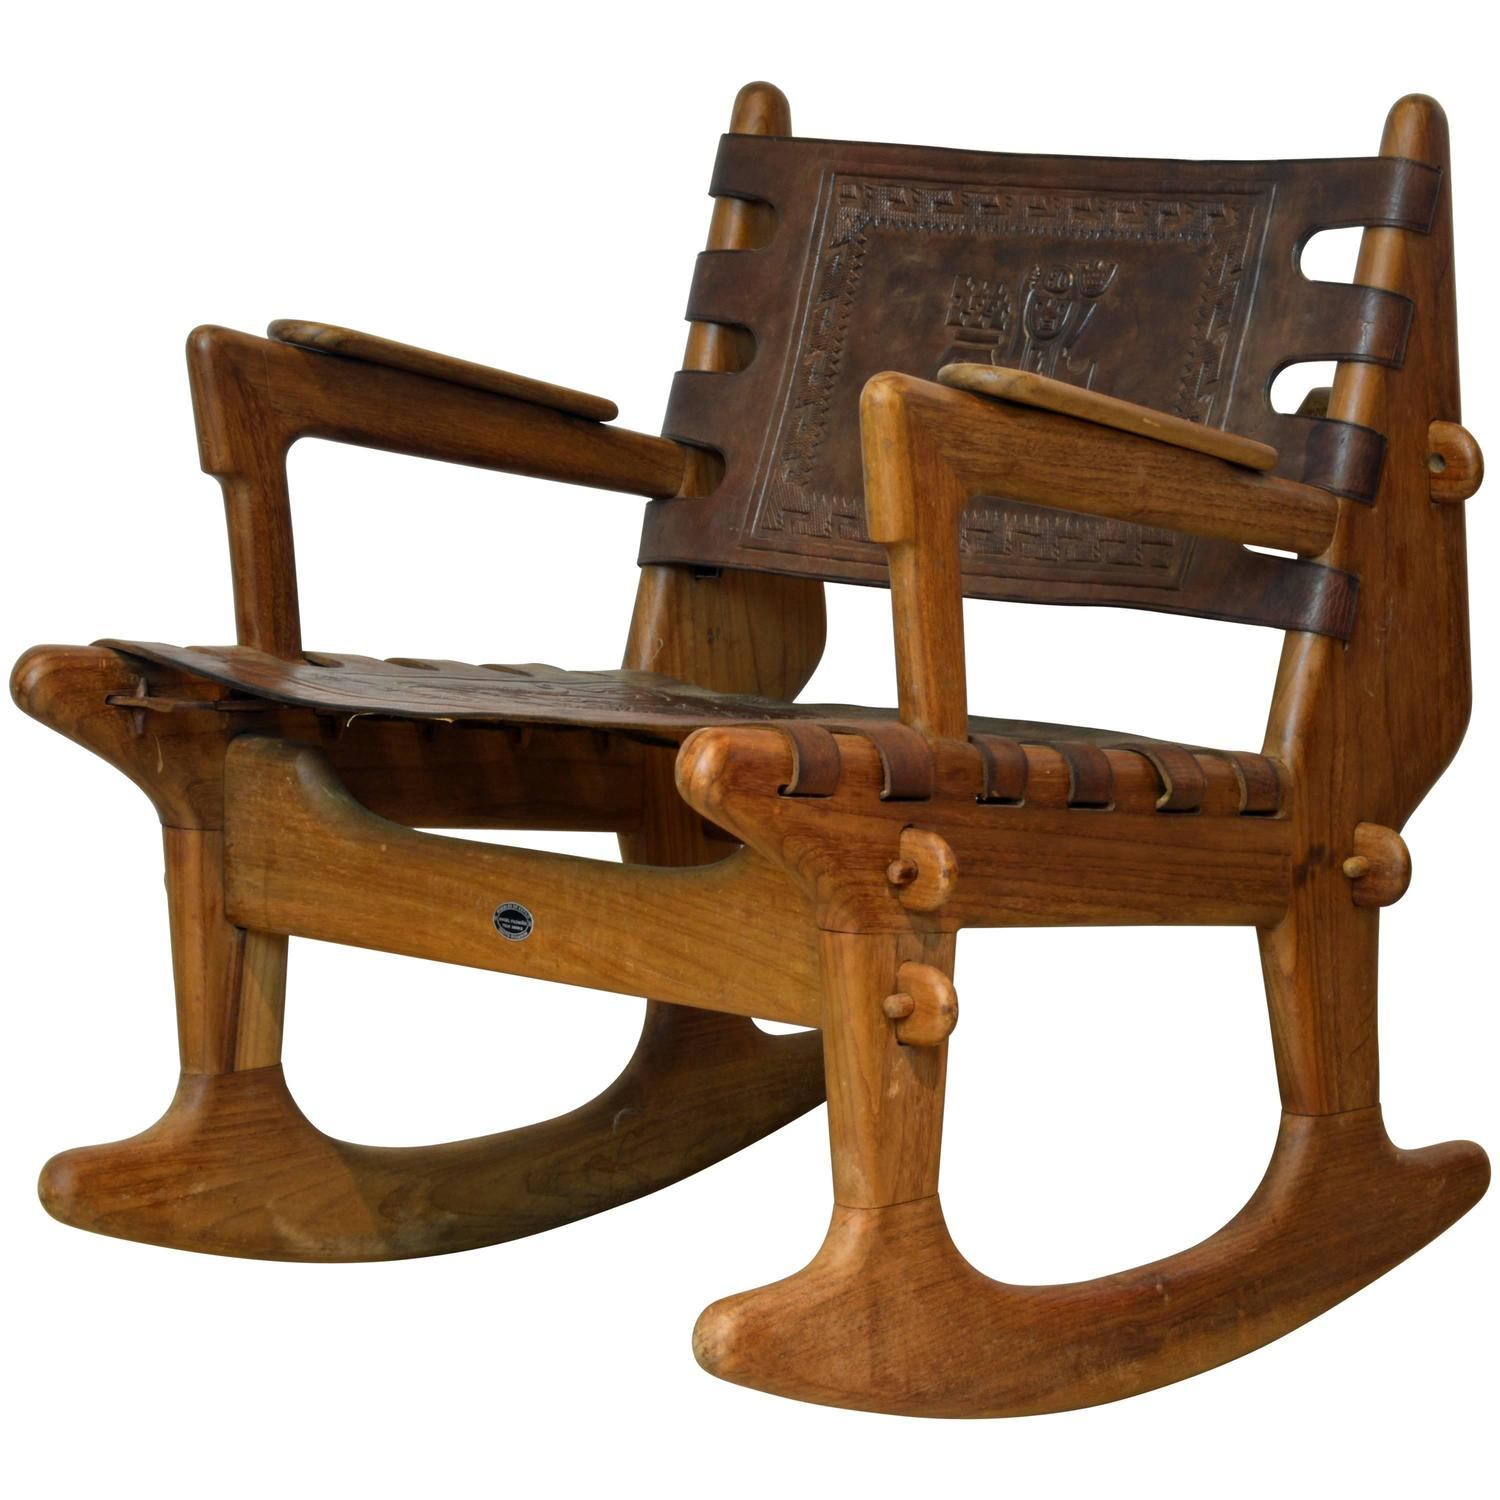 rocking chair fine woodworking harwick extra tall ergonomic drafting mid century modern ecuadorian wood and leather